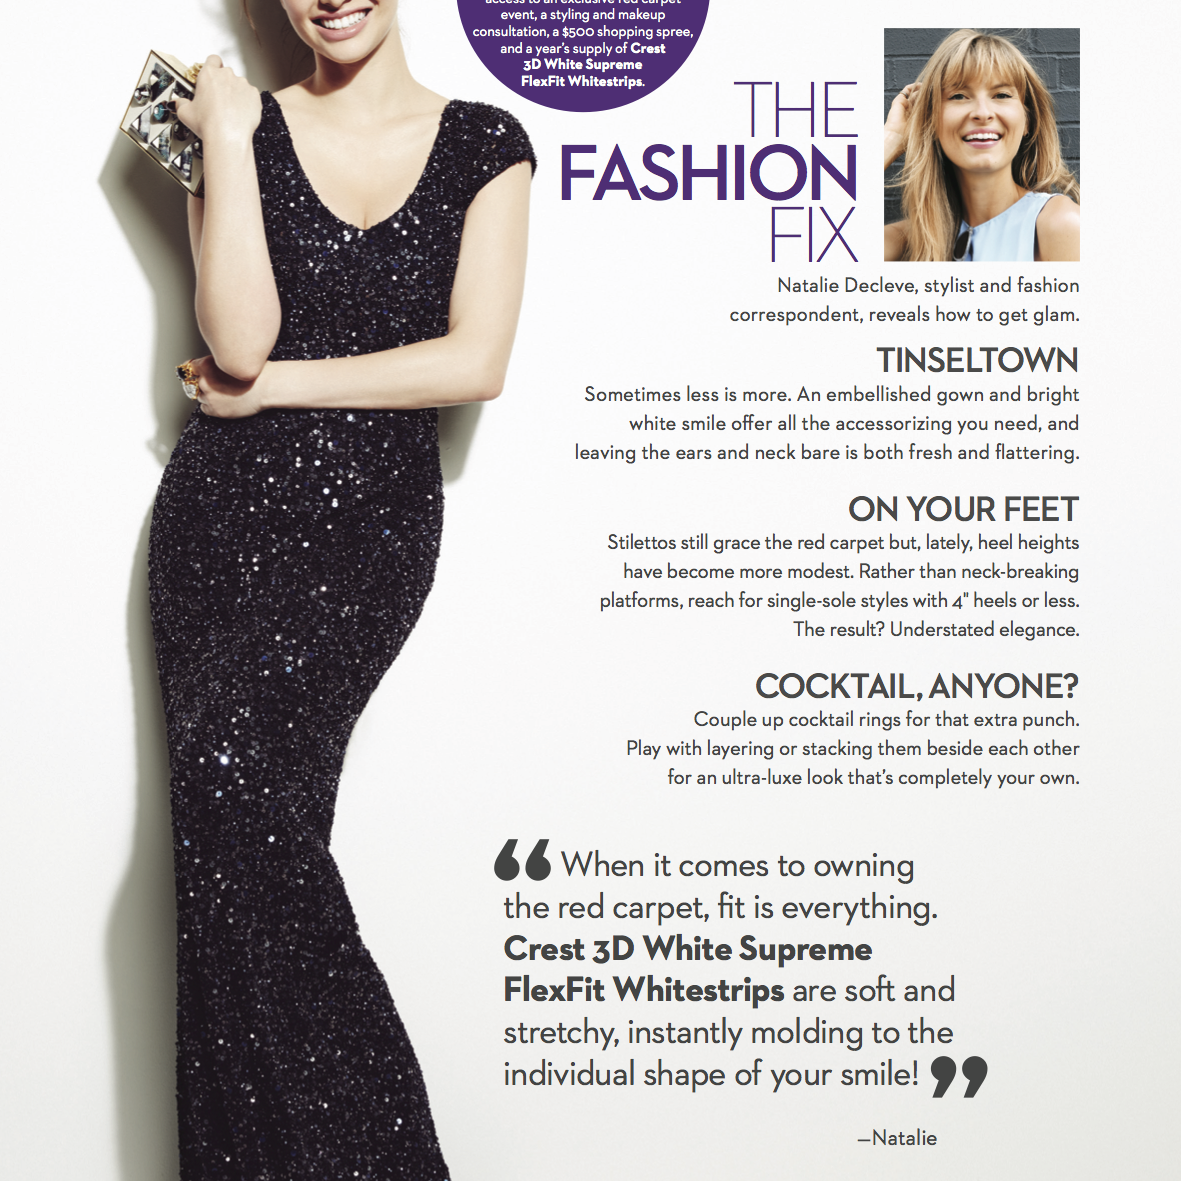 MARIE CLAIRE  The Fashion Fix: Natalie Decleve reveals how to get glam